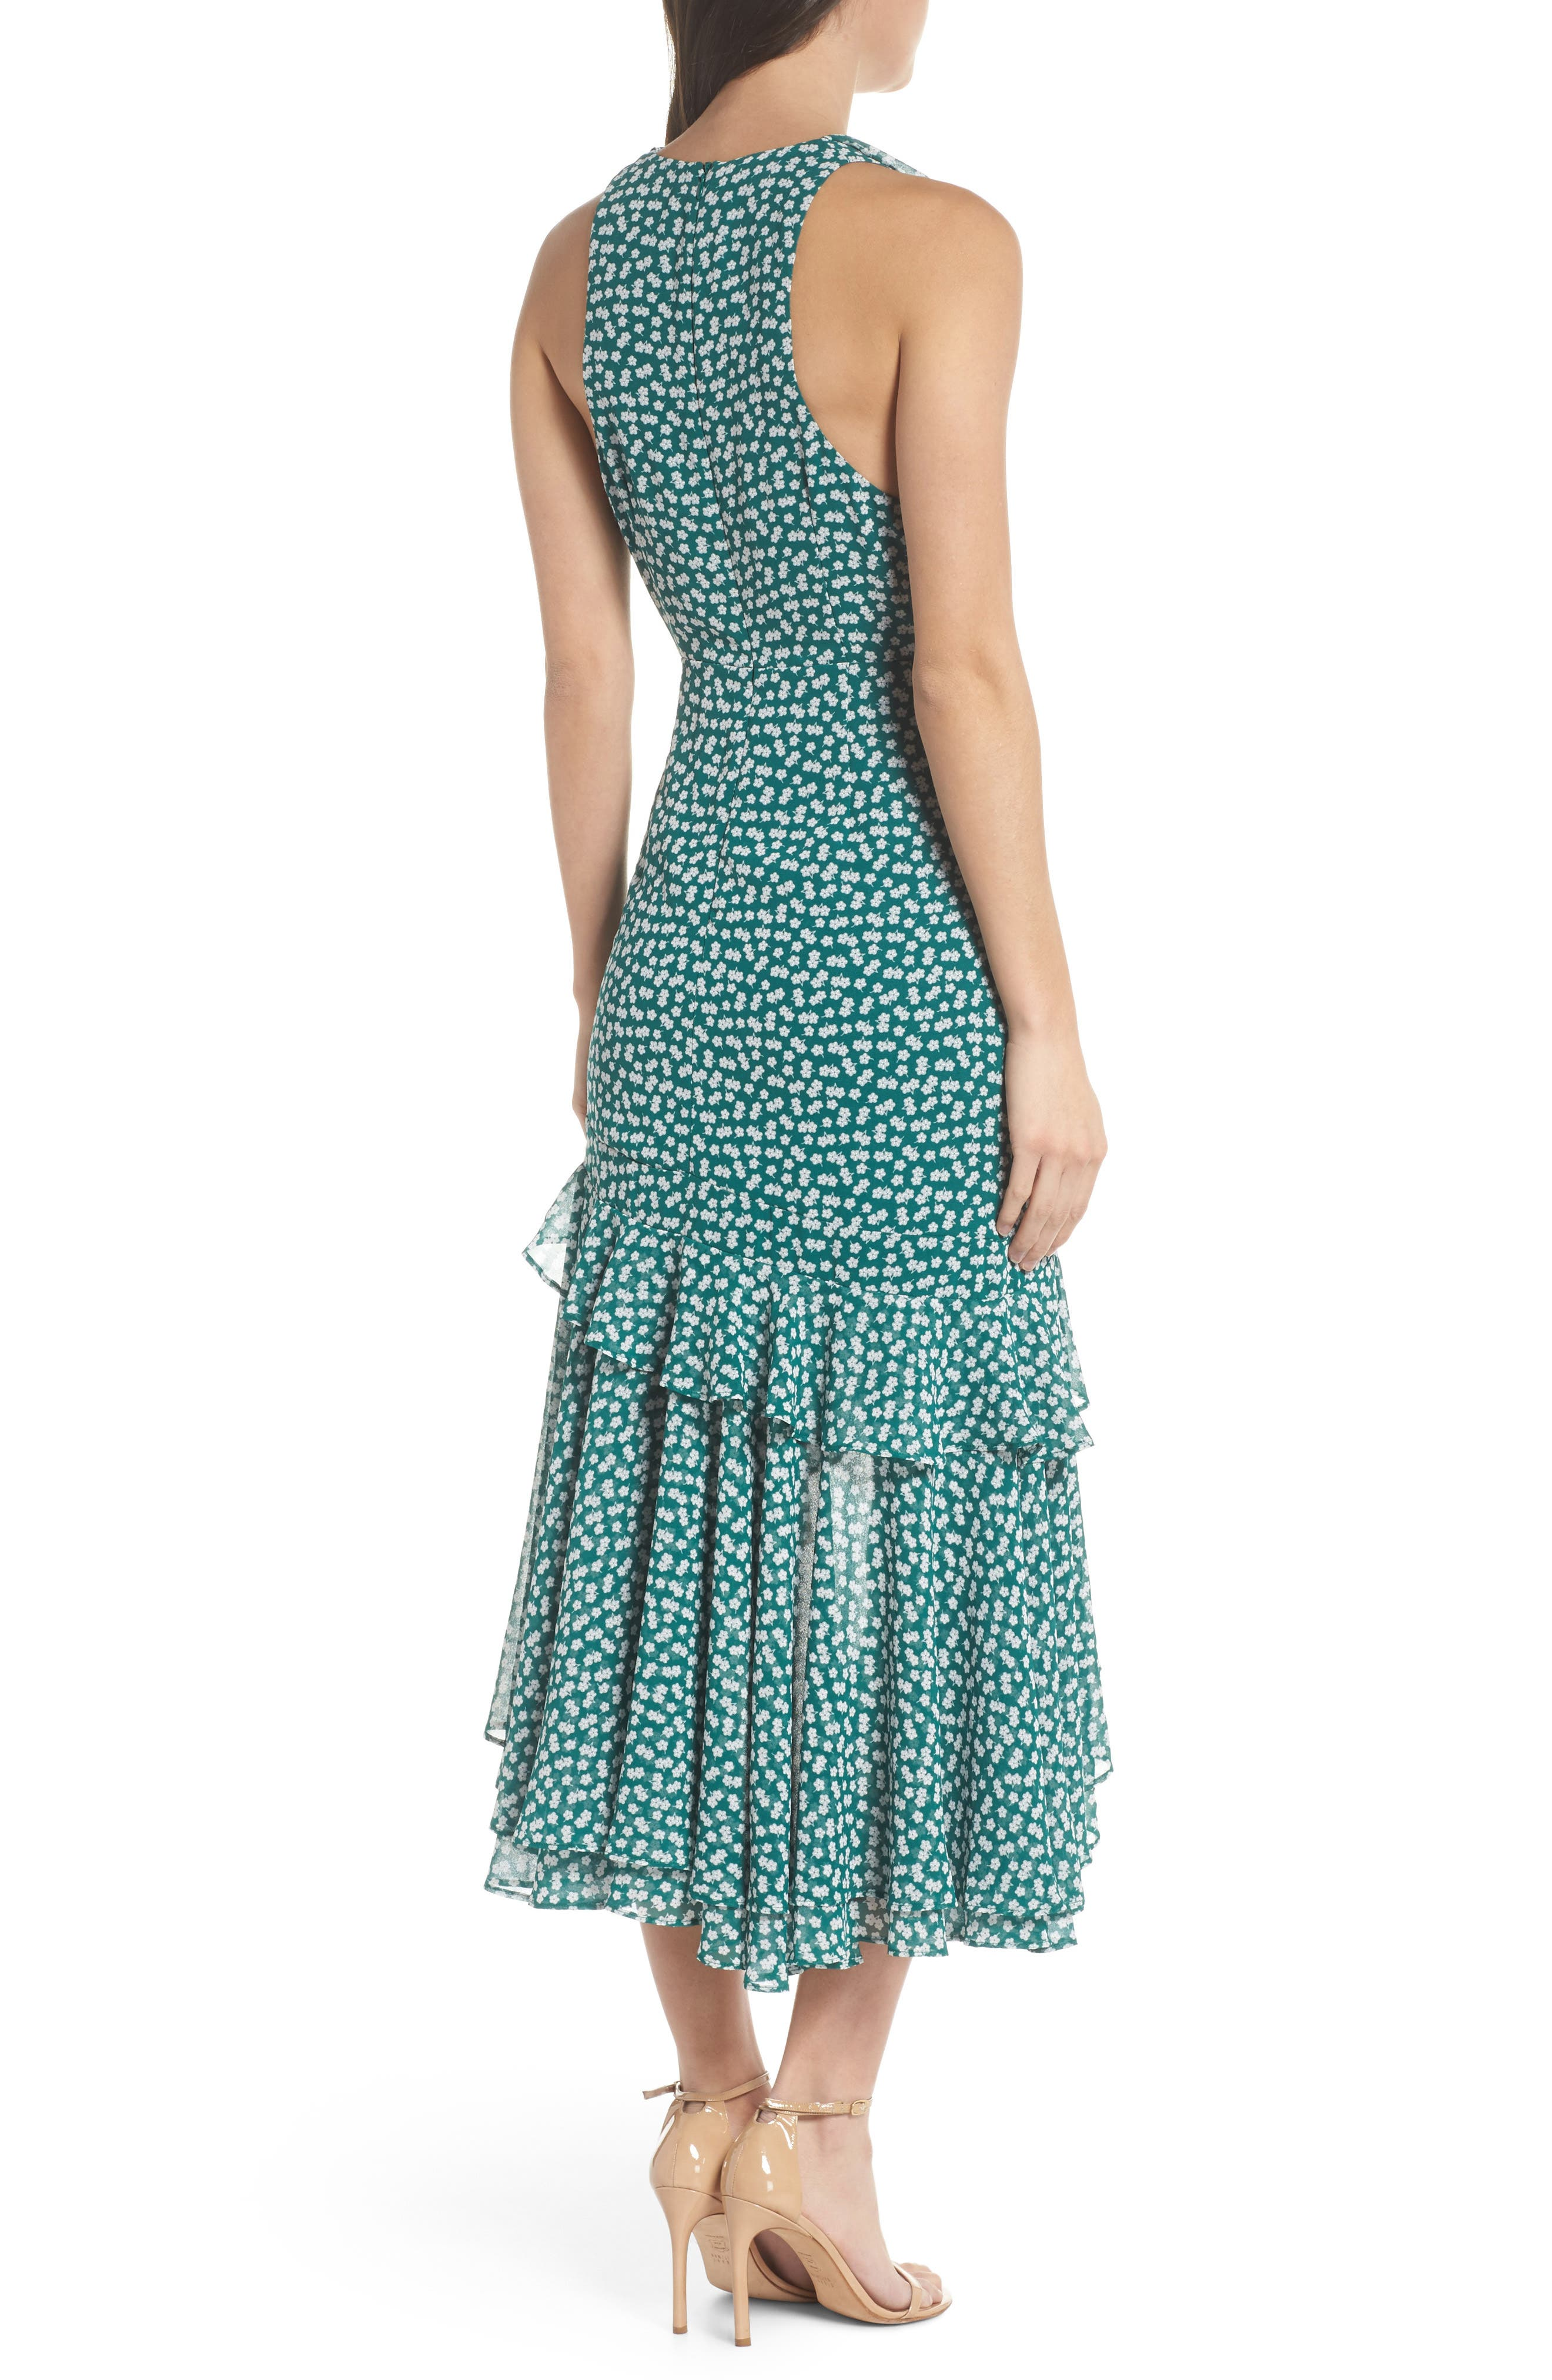 Be About You Ruffle Midi Dress,                             Alternate thumbnail 2, color,                             Green Daisy